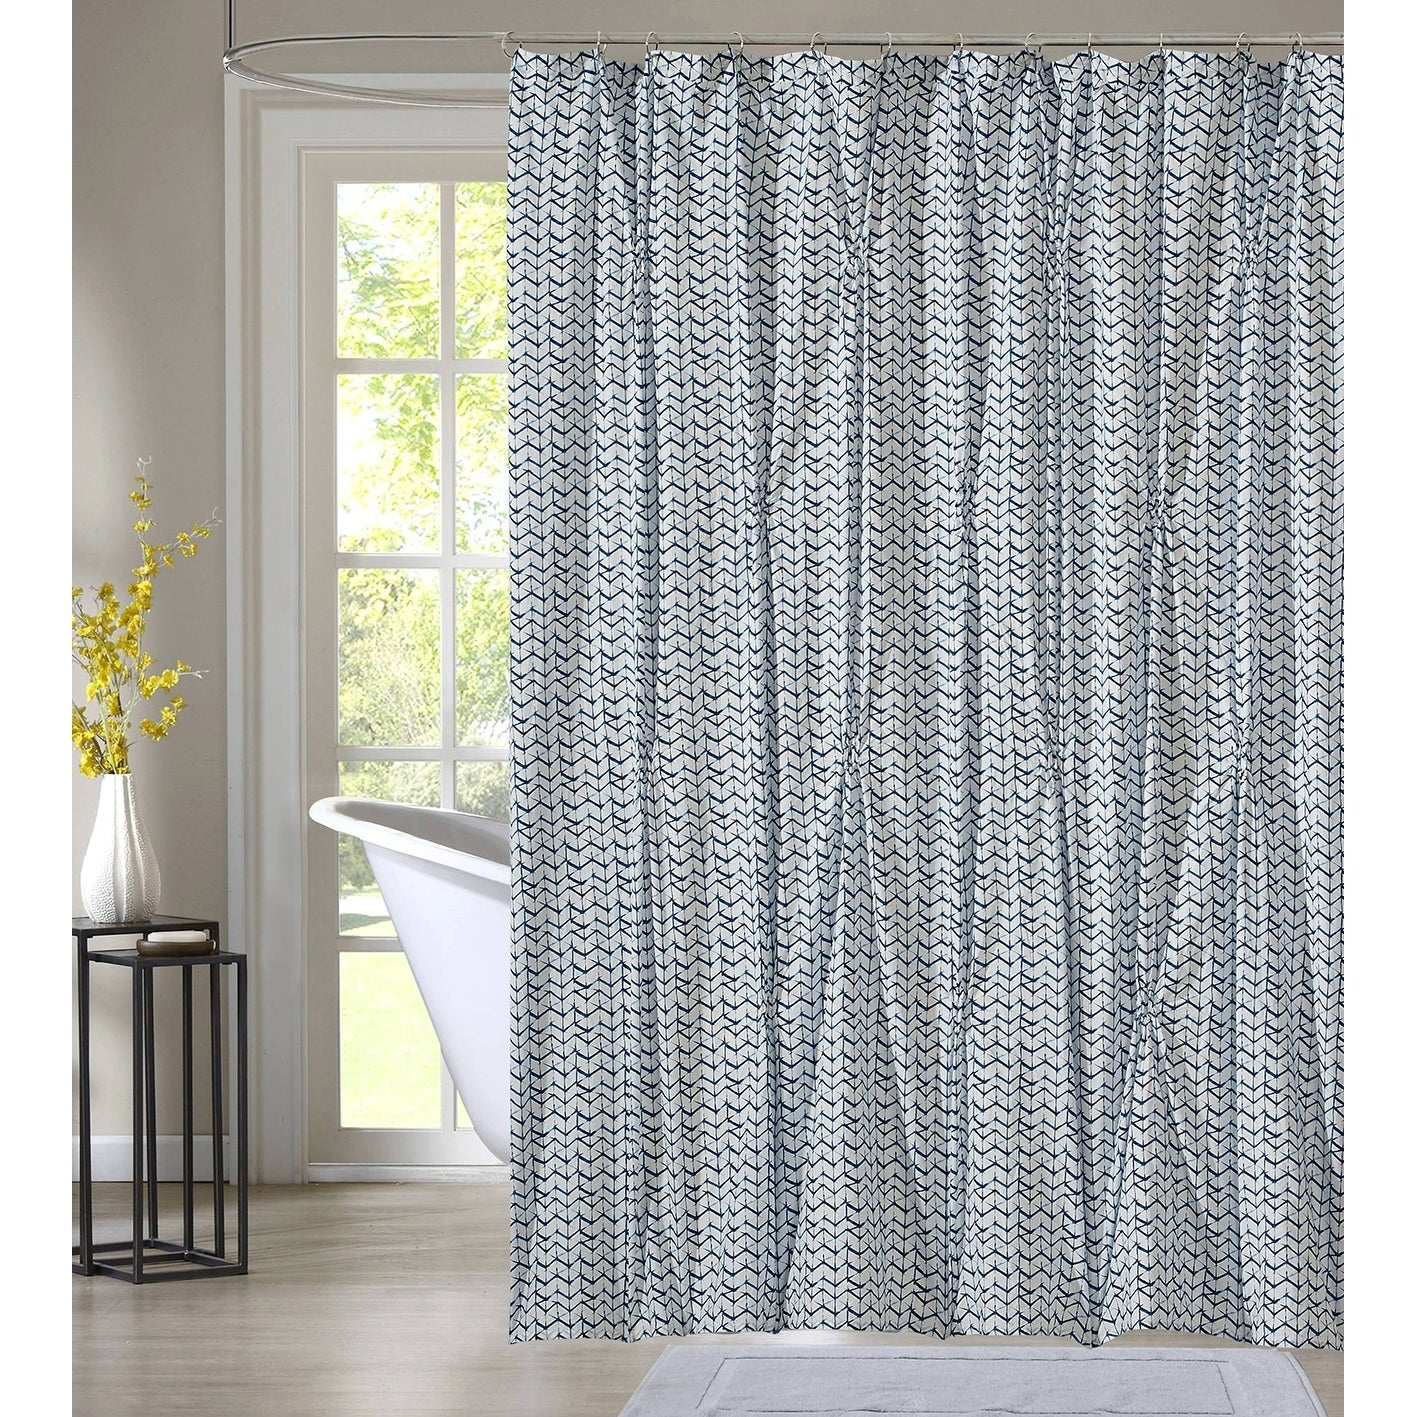 Style Quarters Blue Batik Shower Curtain Shibori Pattern With Smocked Details 100 Cotton